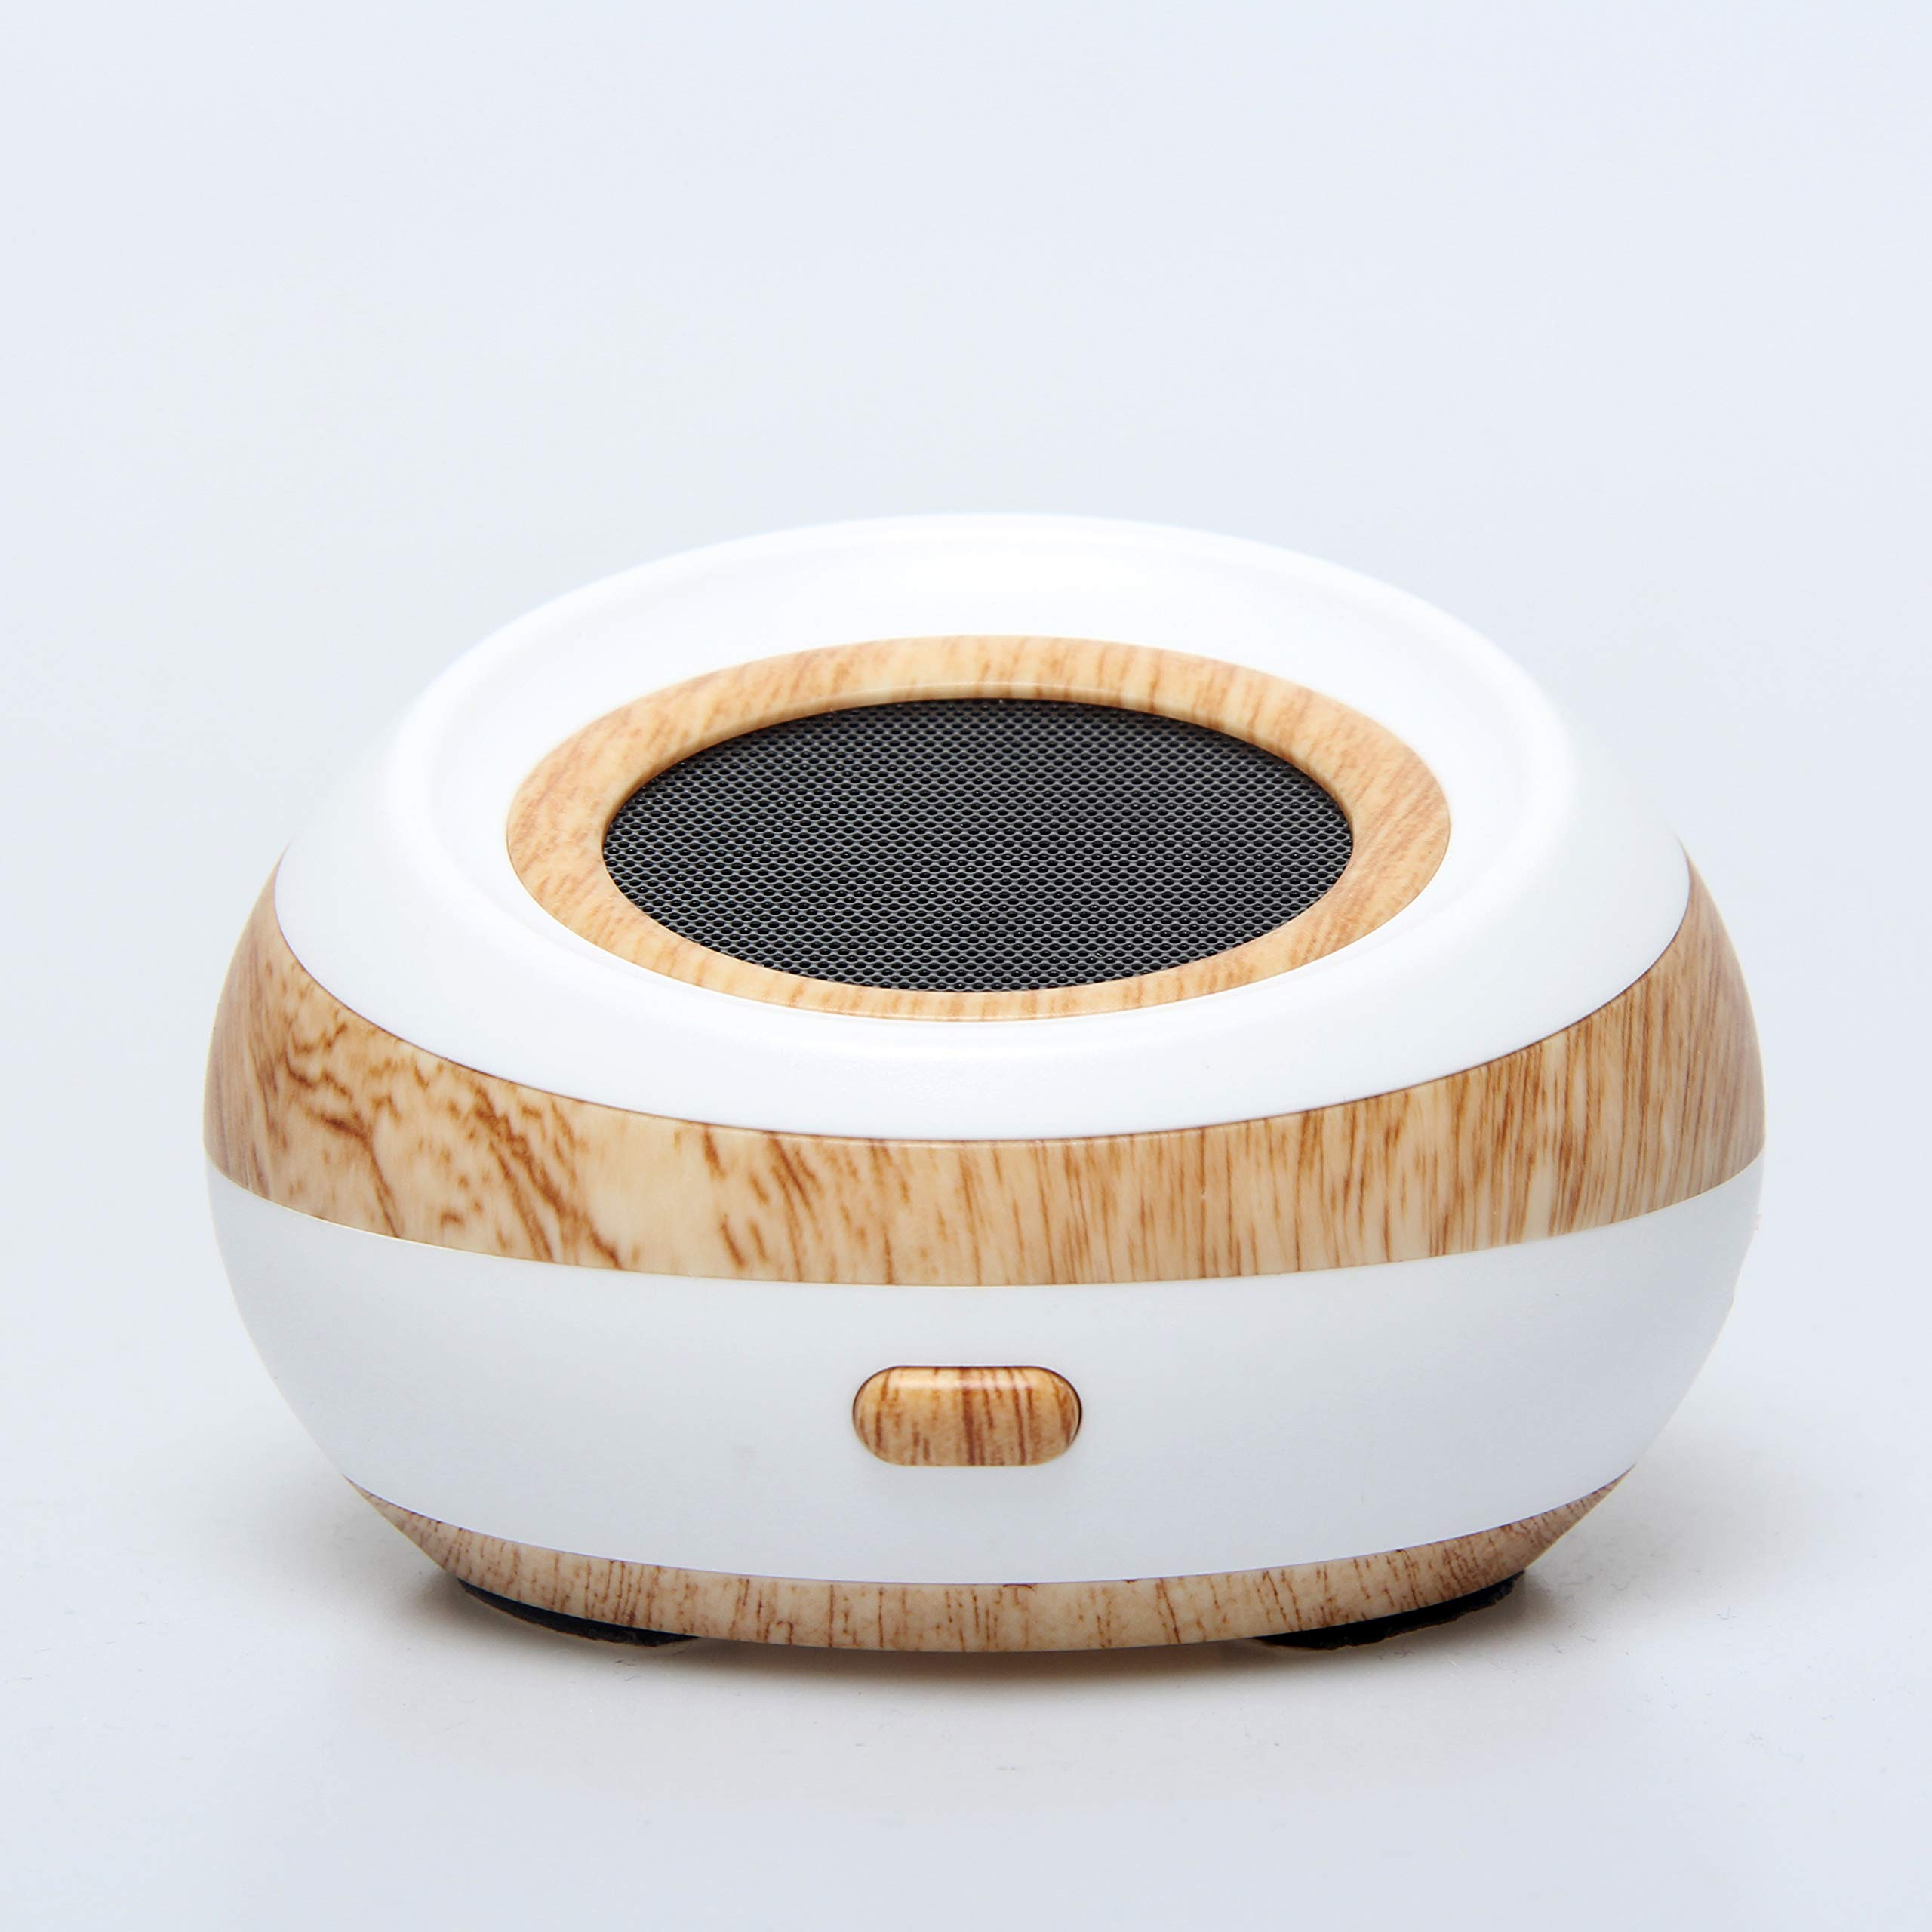 Waterless Aroma Diffuser USB or Battery Powered, Fragrance Essential Oil Diffuser Portable Aromatherapy Fan Diffuser for Car and Small Room